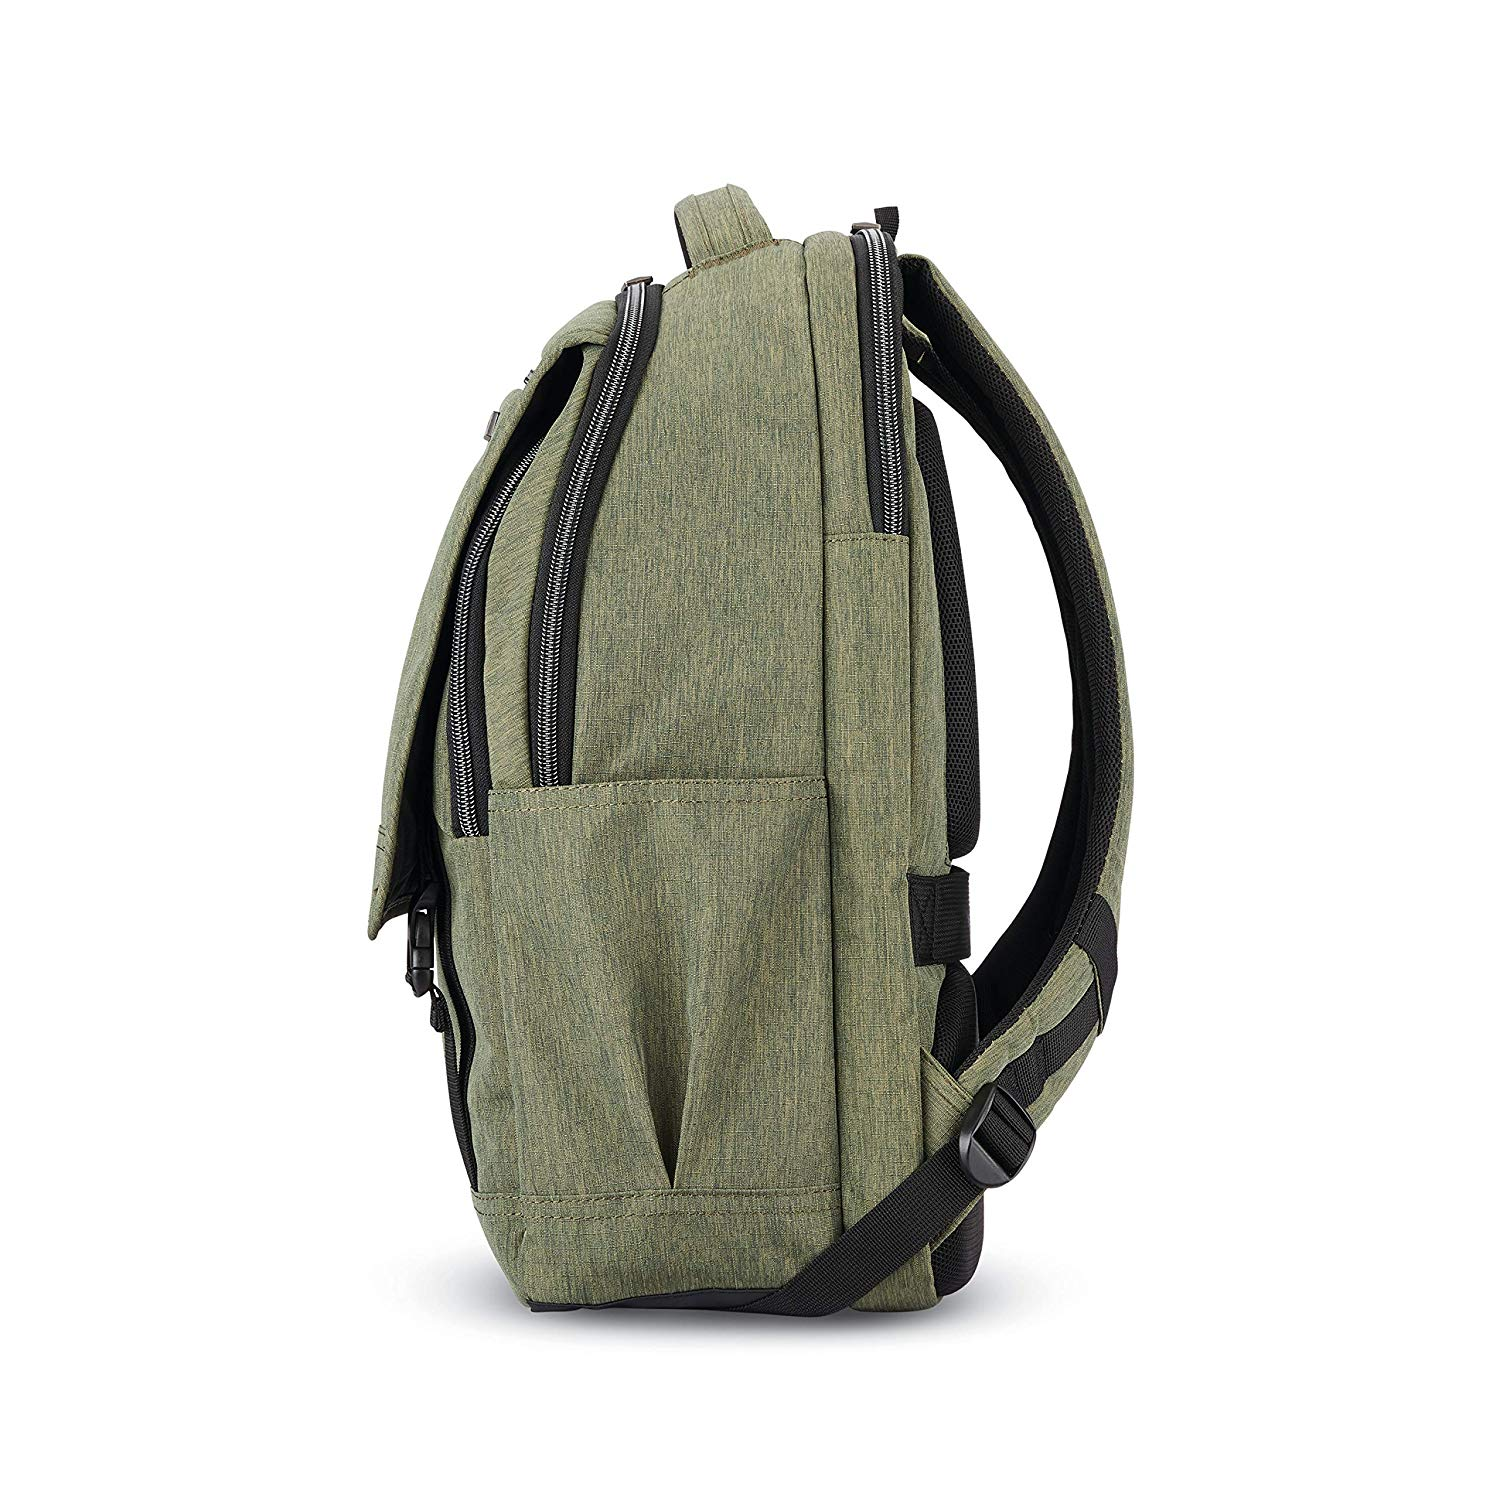 Modern Utility Paracycle Backpack Laptop, Charcoal Heather, Travel Backpack, Wear Resistant And Not Easy To Break